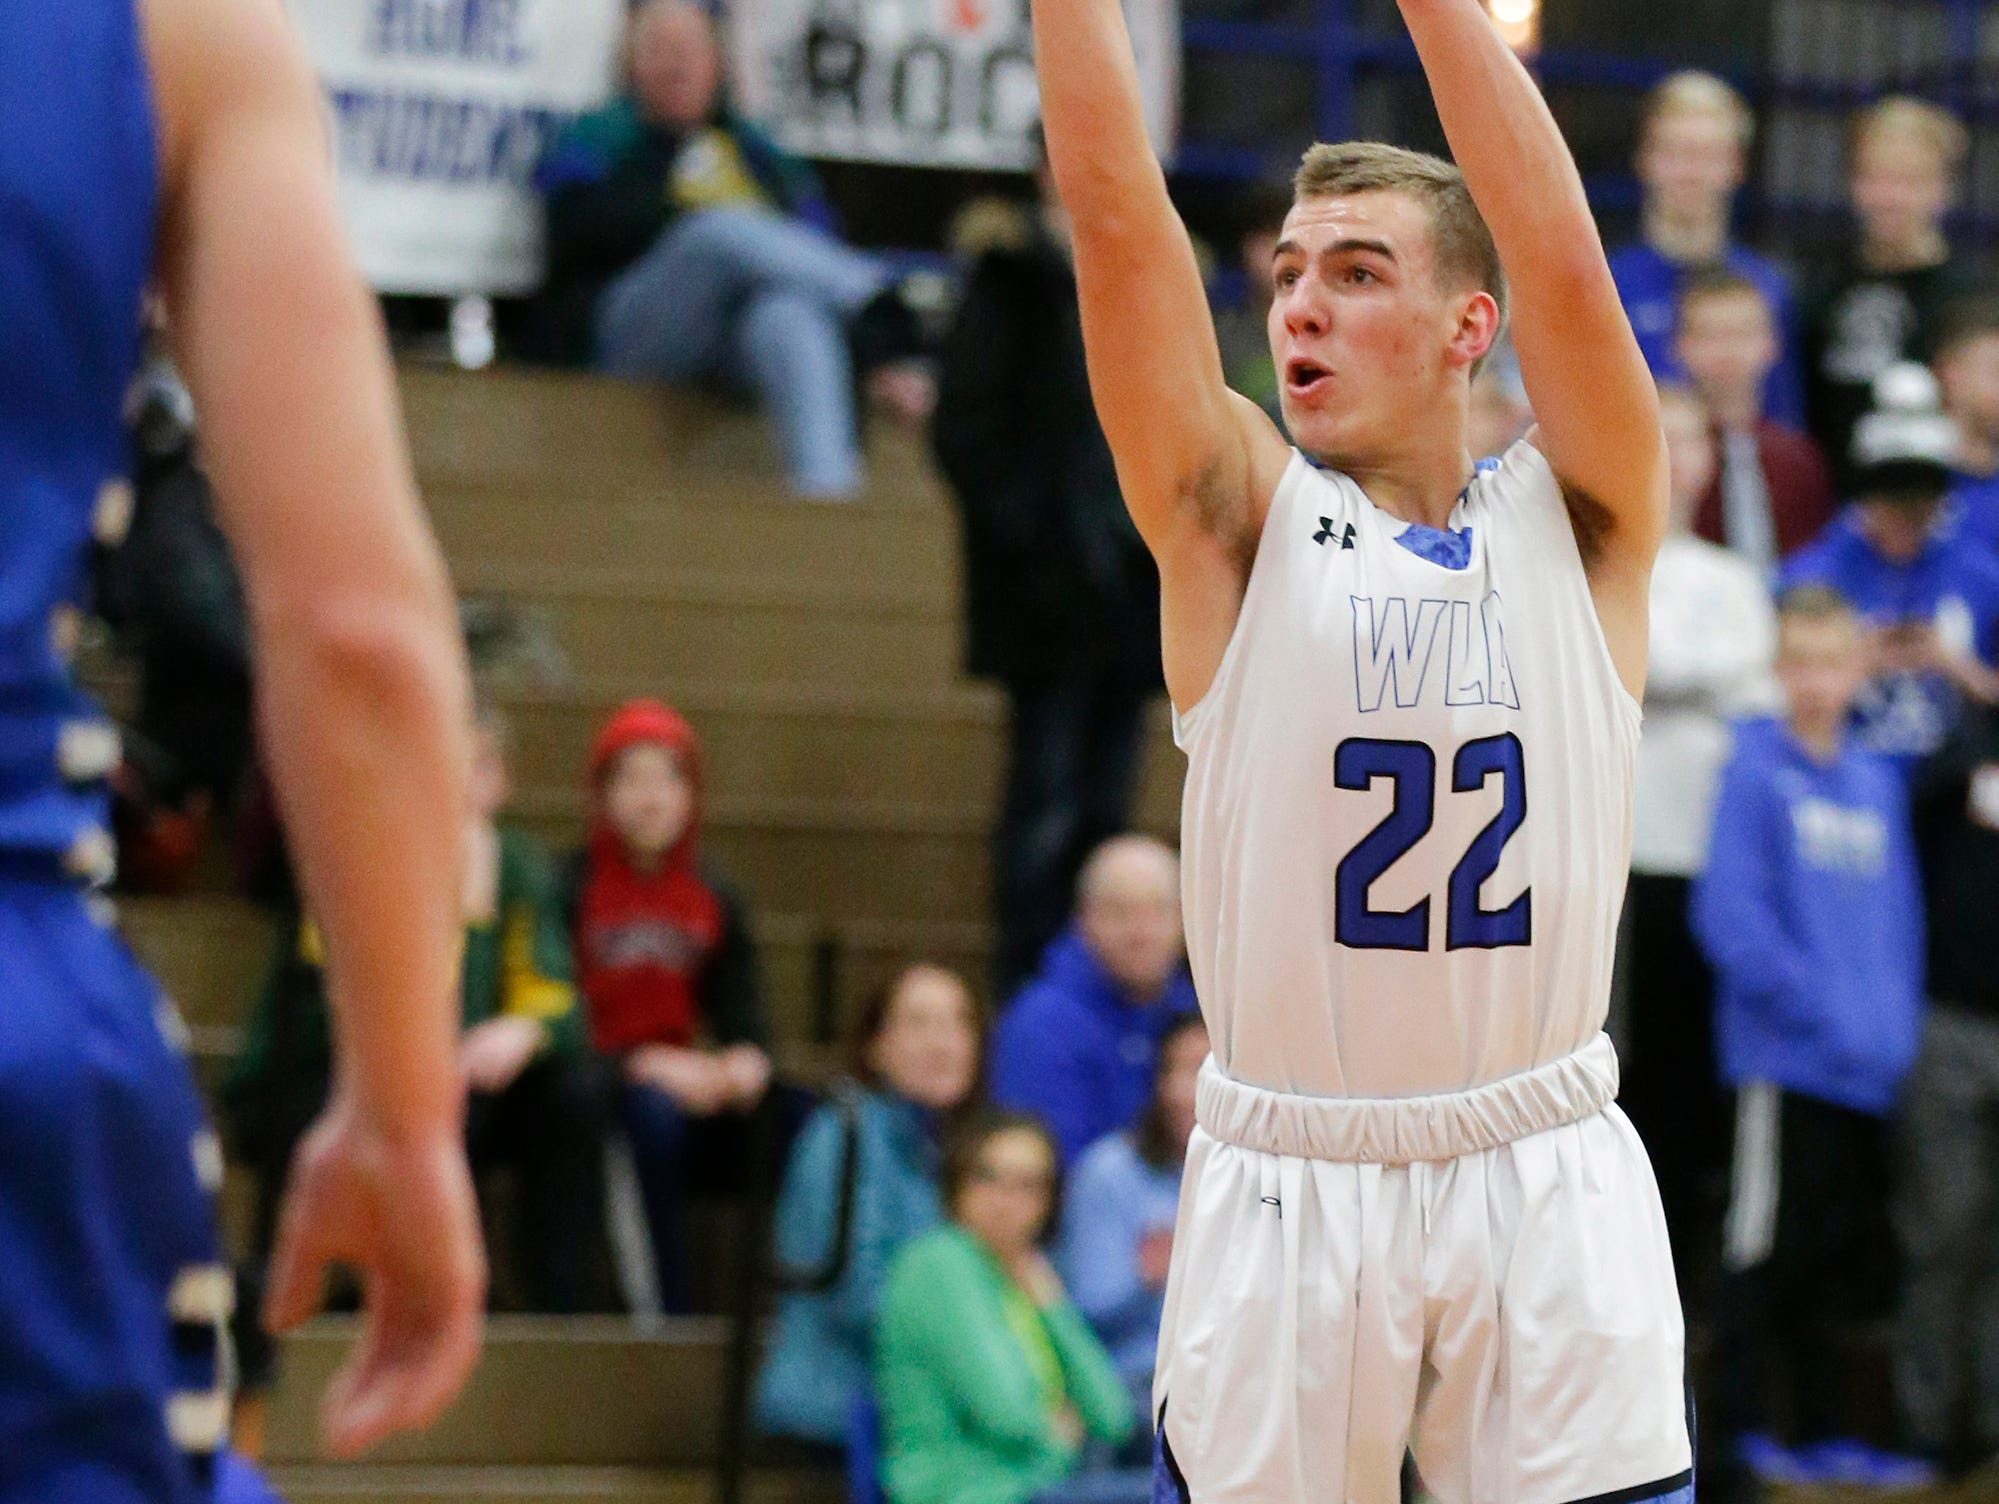 Winnebago Lutheran Academy boys basketball's Donovan Schwartz takes a shot against St. Mary's Springs Academy Tuesday, January 8, 2019 during their game in Fond du Lac. Winnebago Lutheran Academy won the game 69-66. Doug Raflik/USA TODAY NETWORK-Wisconsin